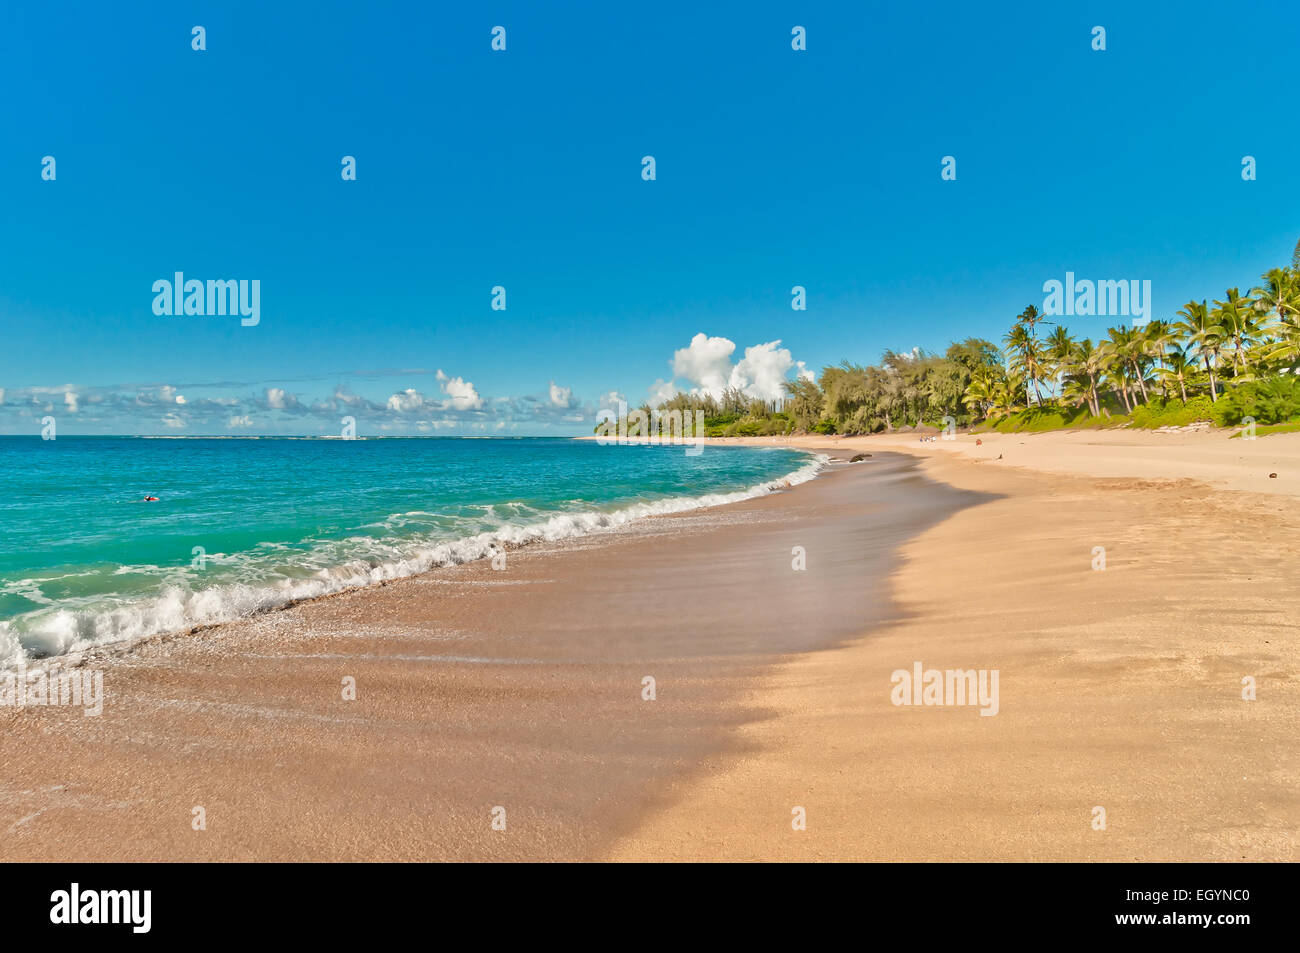 tropical exotic secluded Haena beach in Kauai island, Hawaii - Stock Image